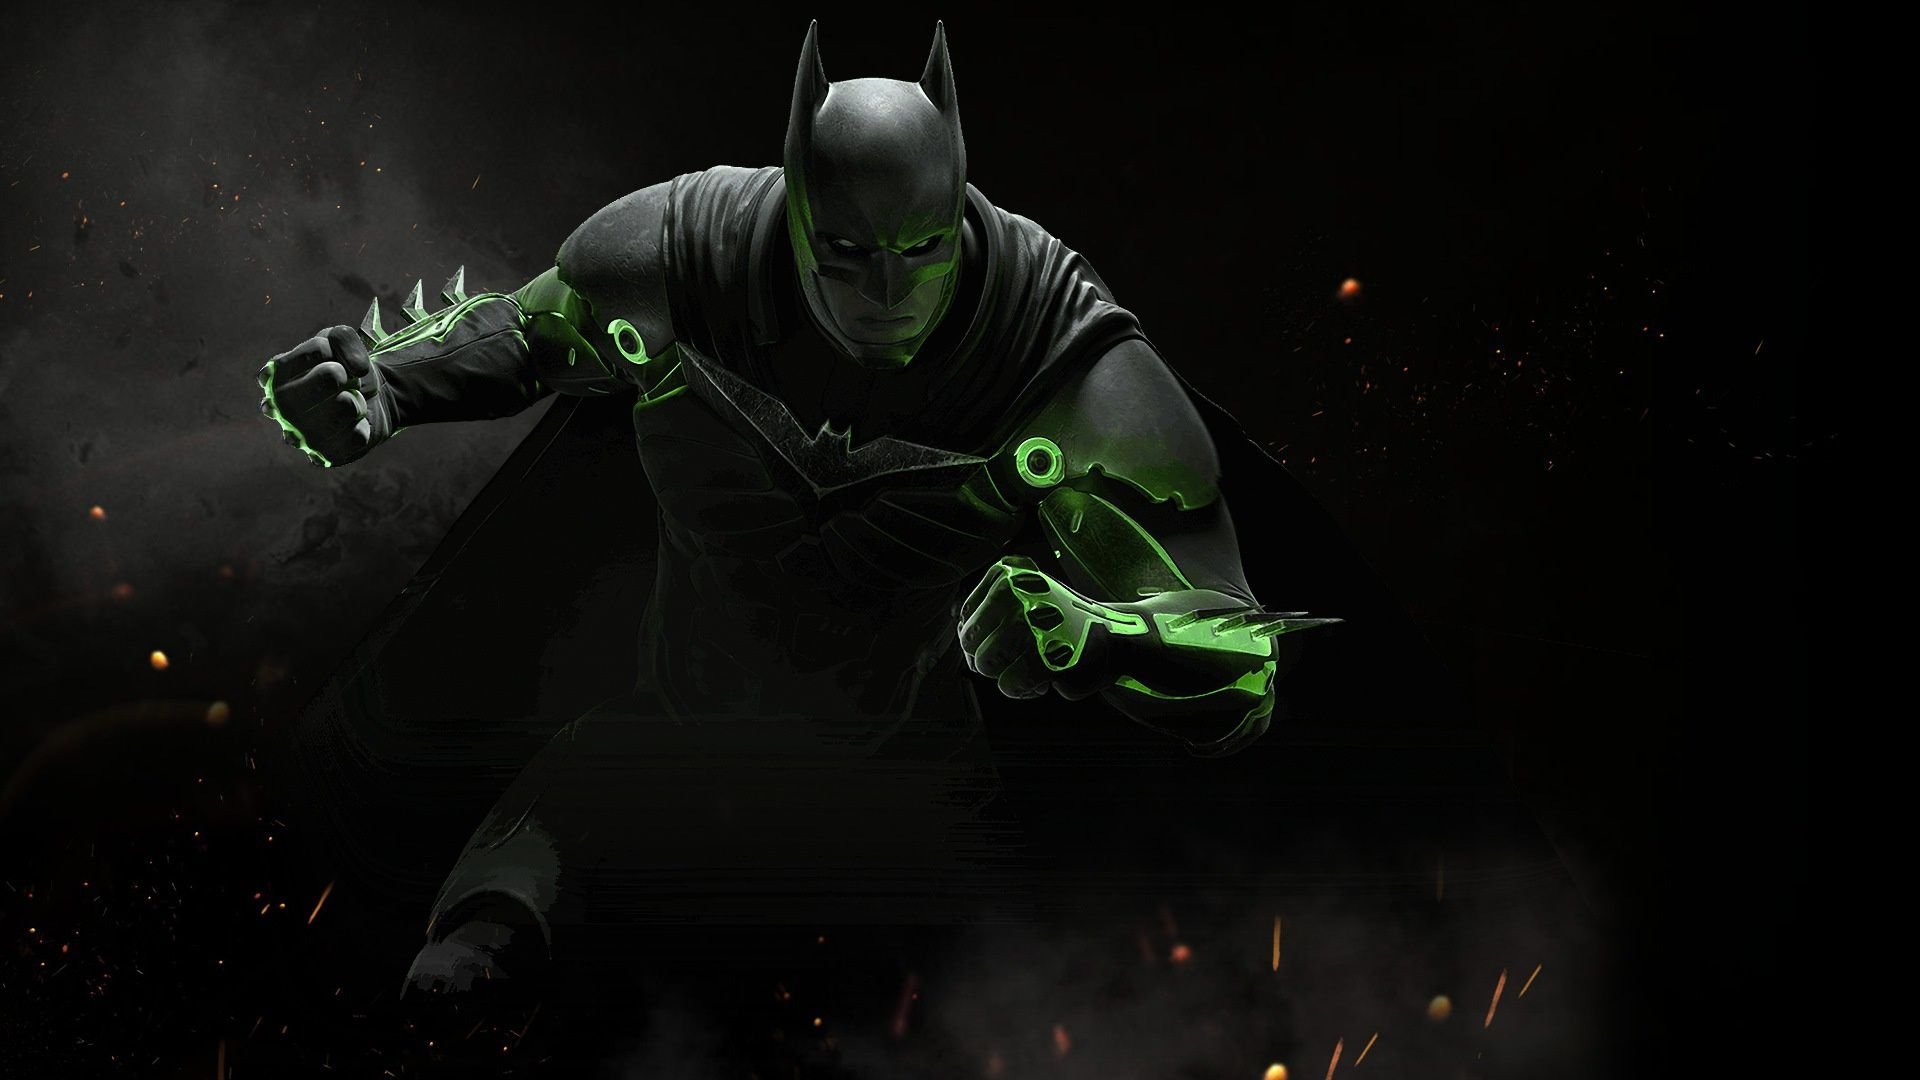 Batman In Injustice 2 This Hd Batman In Injustice 2 Wallpaper Is Based On Injustice 2 Game It Released On N A Batman Batman Injustice Batman Comic Wallpaper